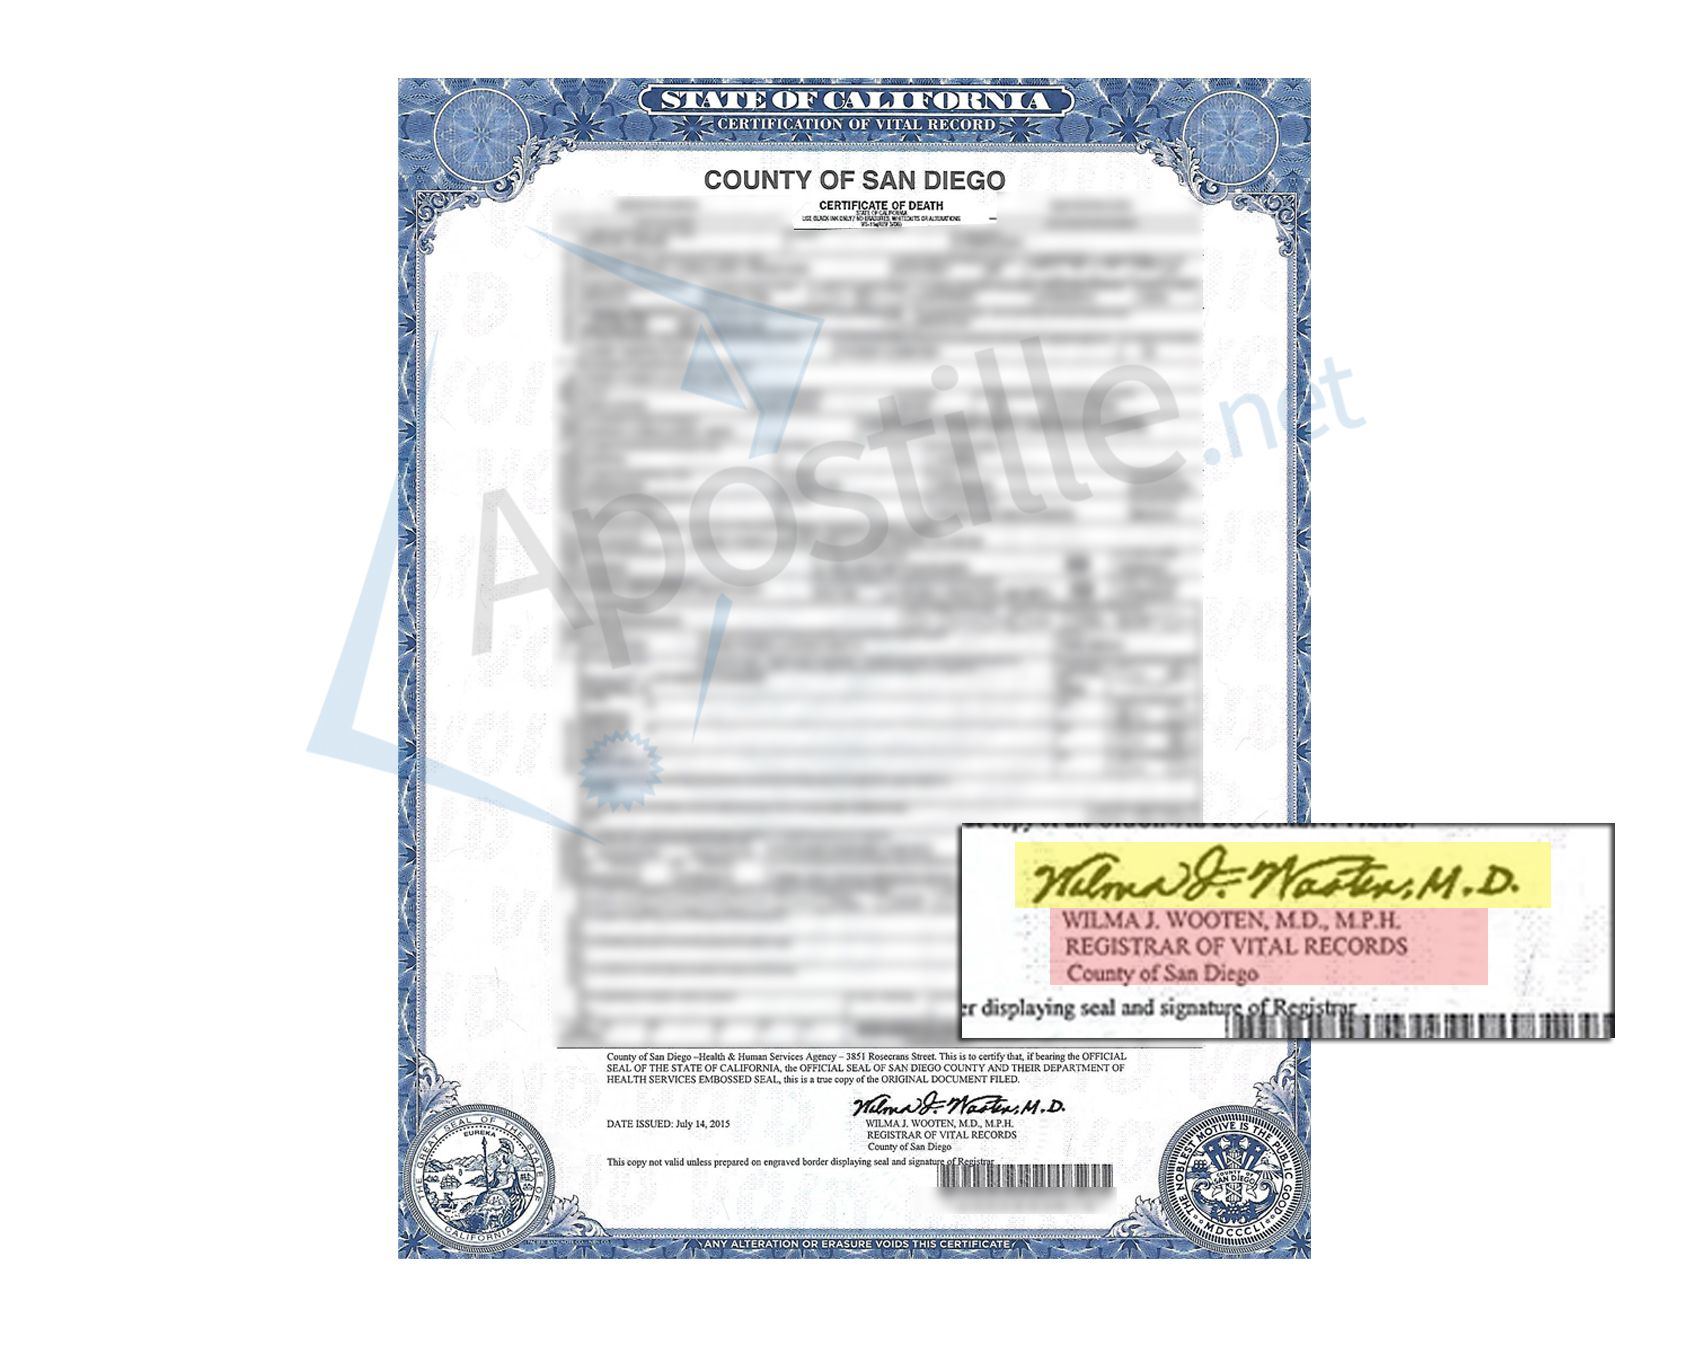 County of fresno certificate of death ready for apostille state county of san diego certificate of death signed by wilma j wooten registrar of 1betcityfo Images